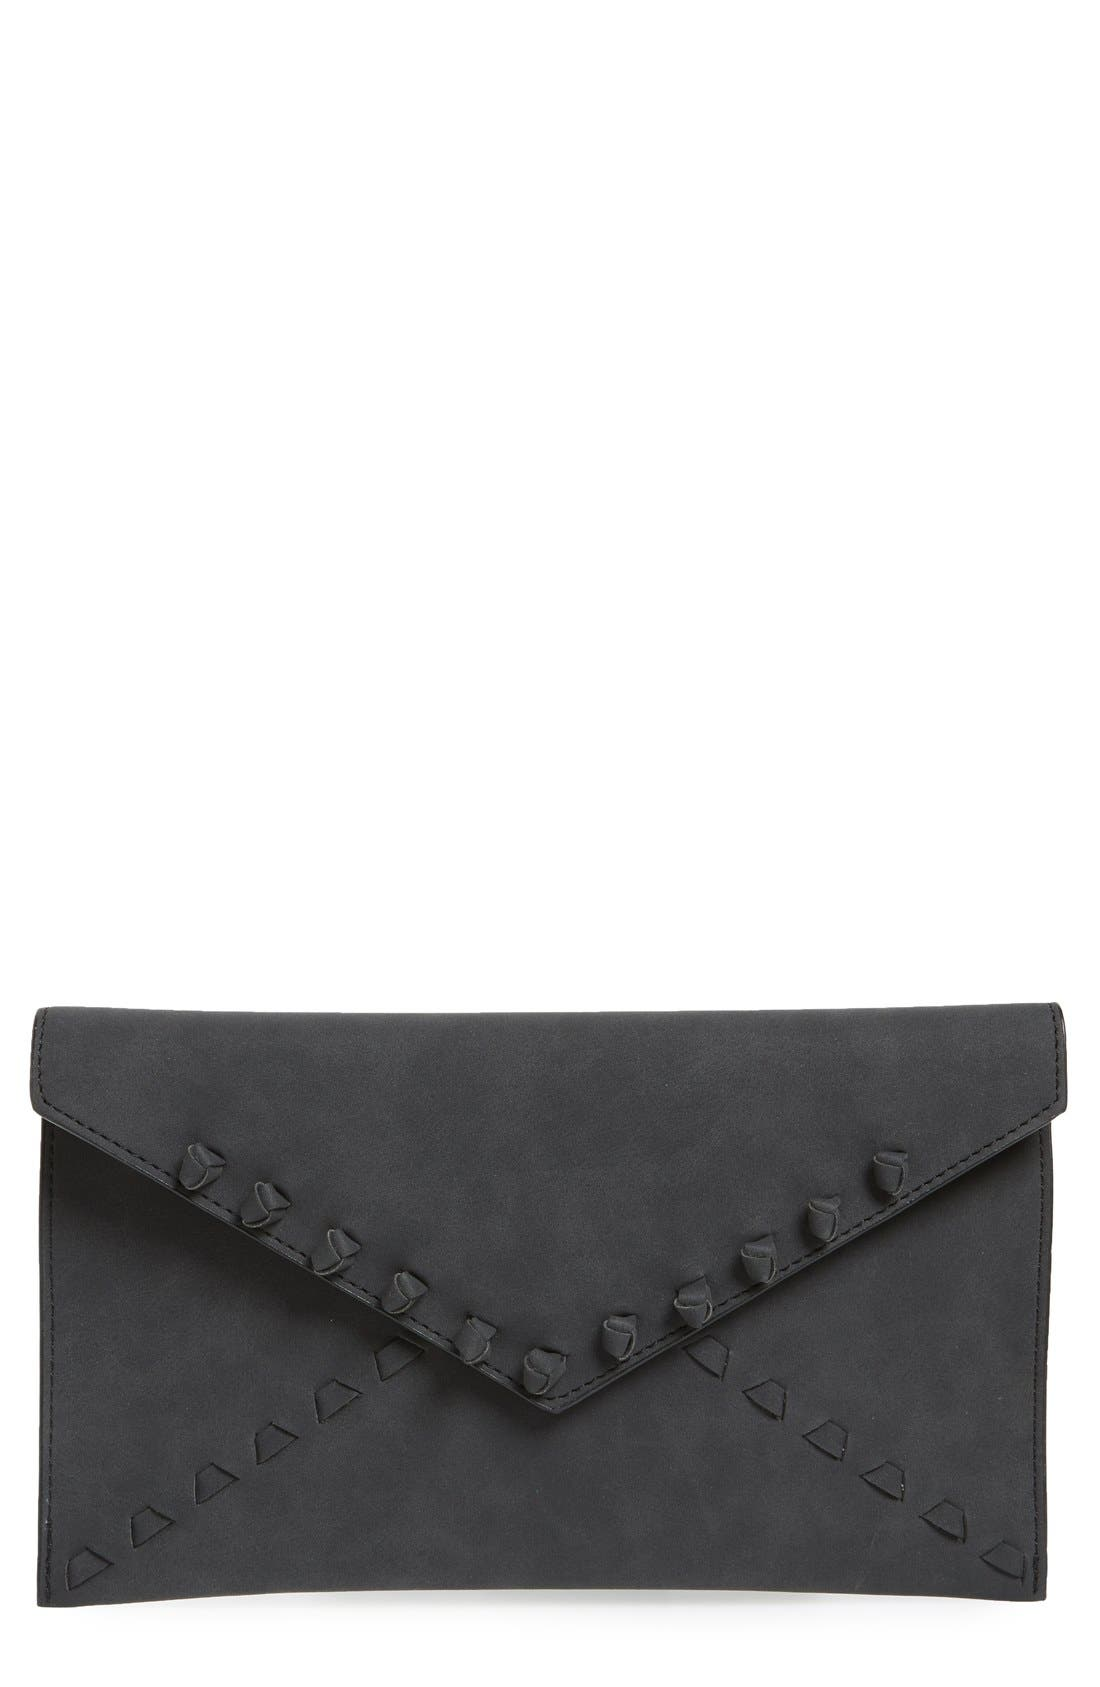 Alternate Image 1 Selected - Danielle Nicole 'Tina' Faux Leather Envelope Clutch